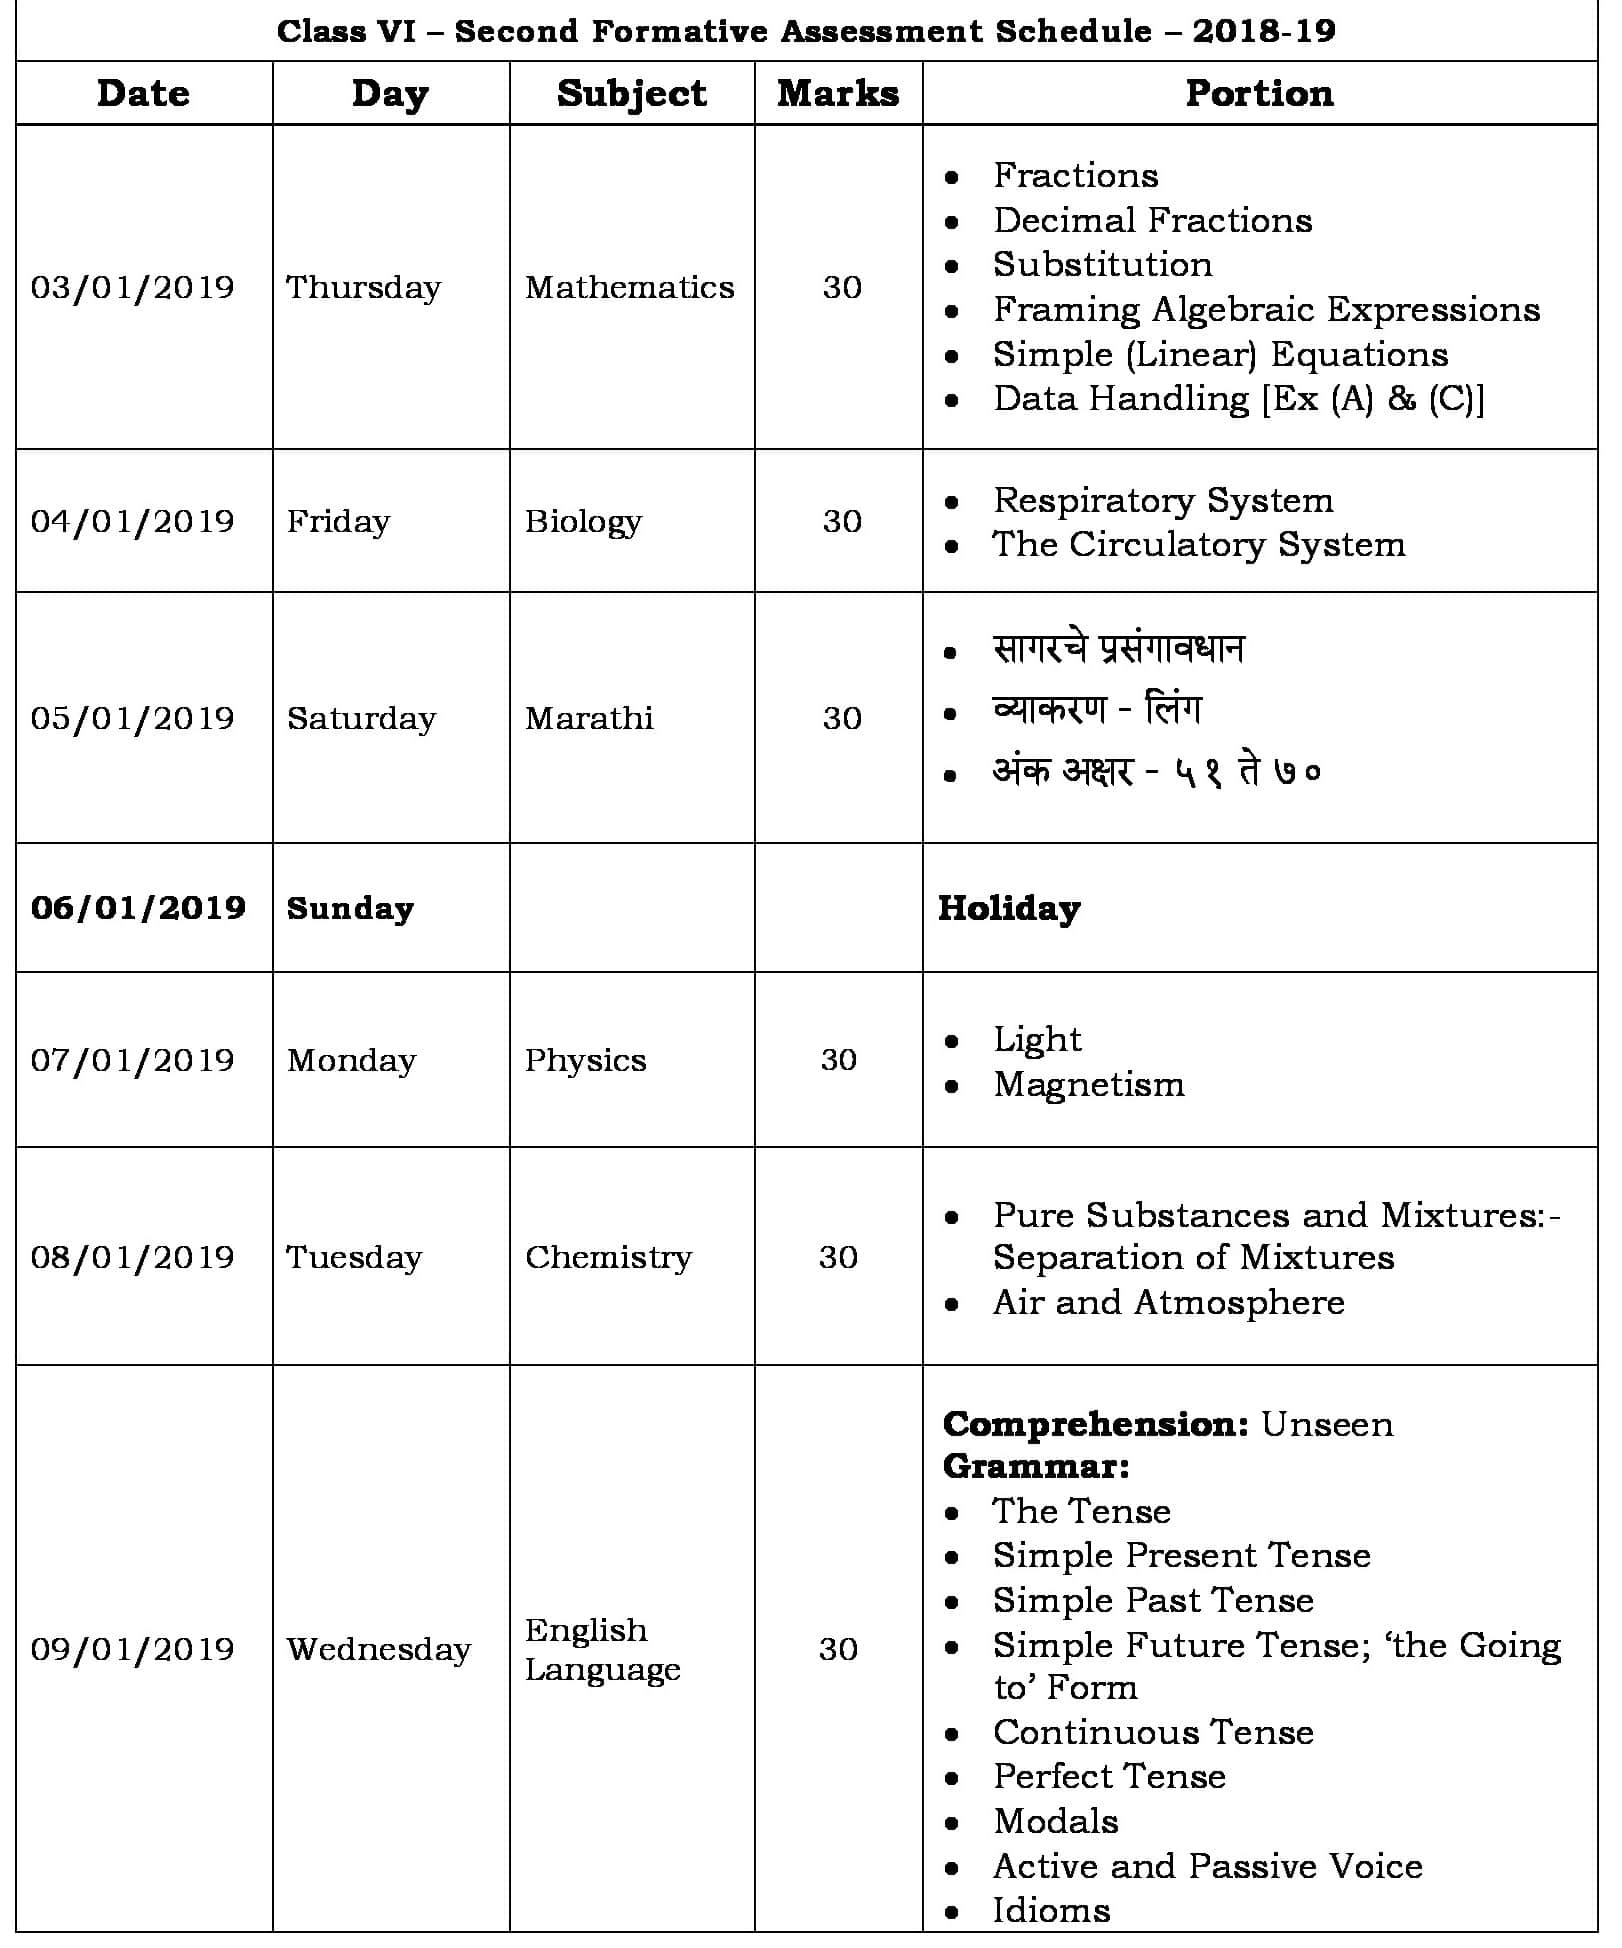 Schedule for FA 2 Examination